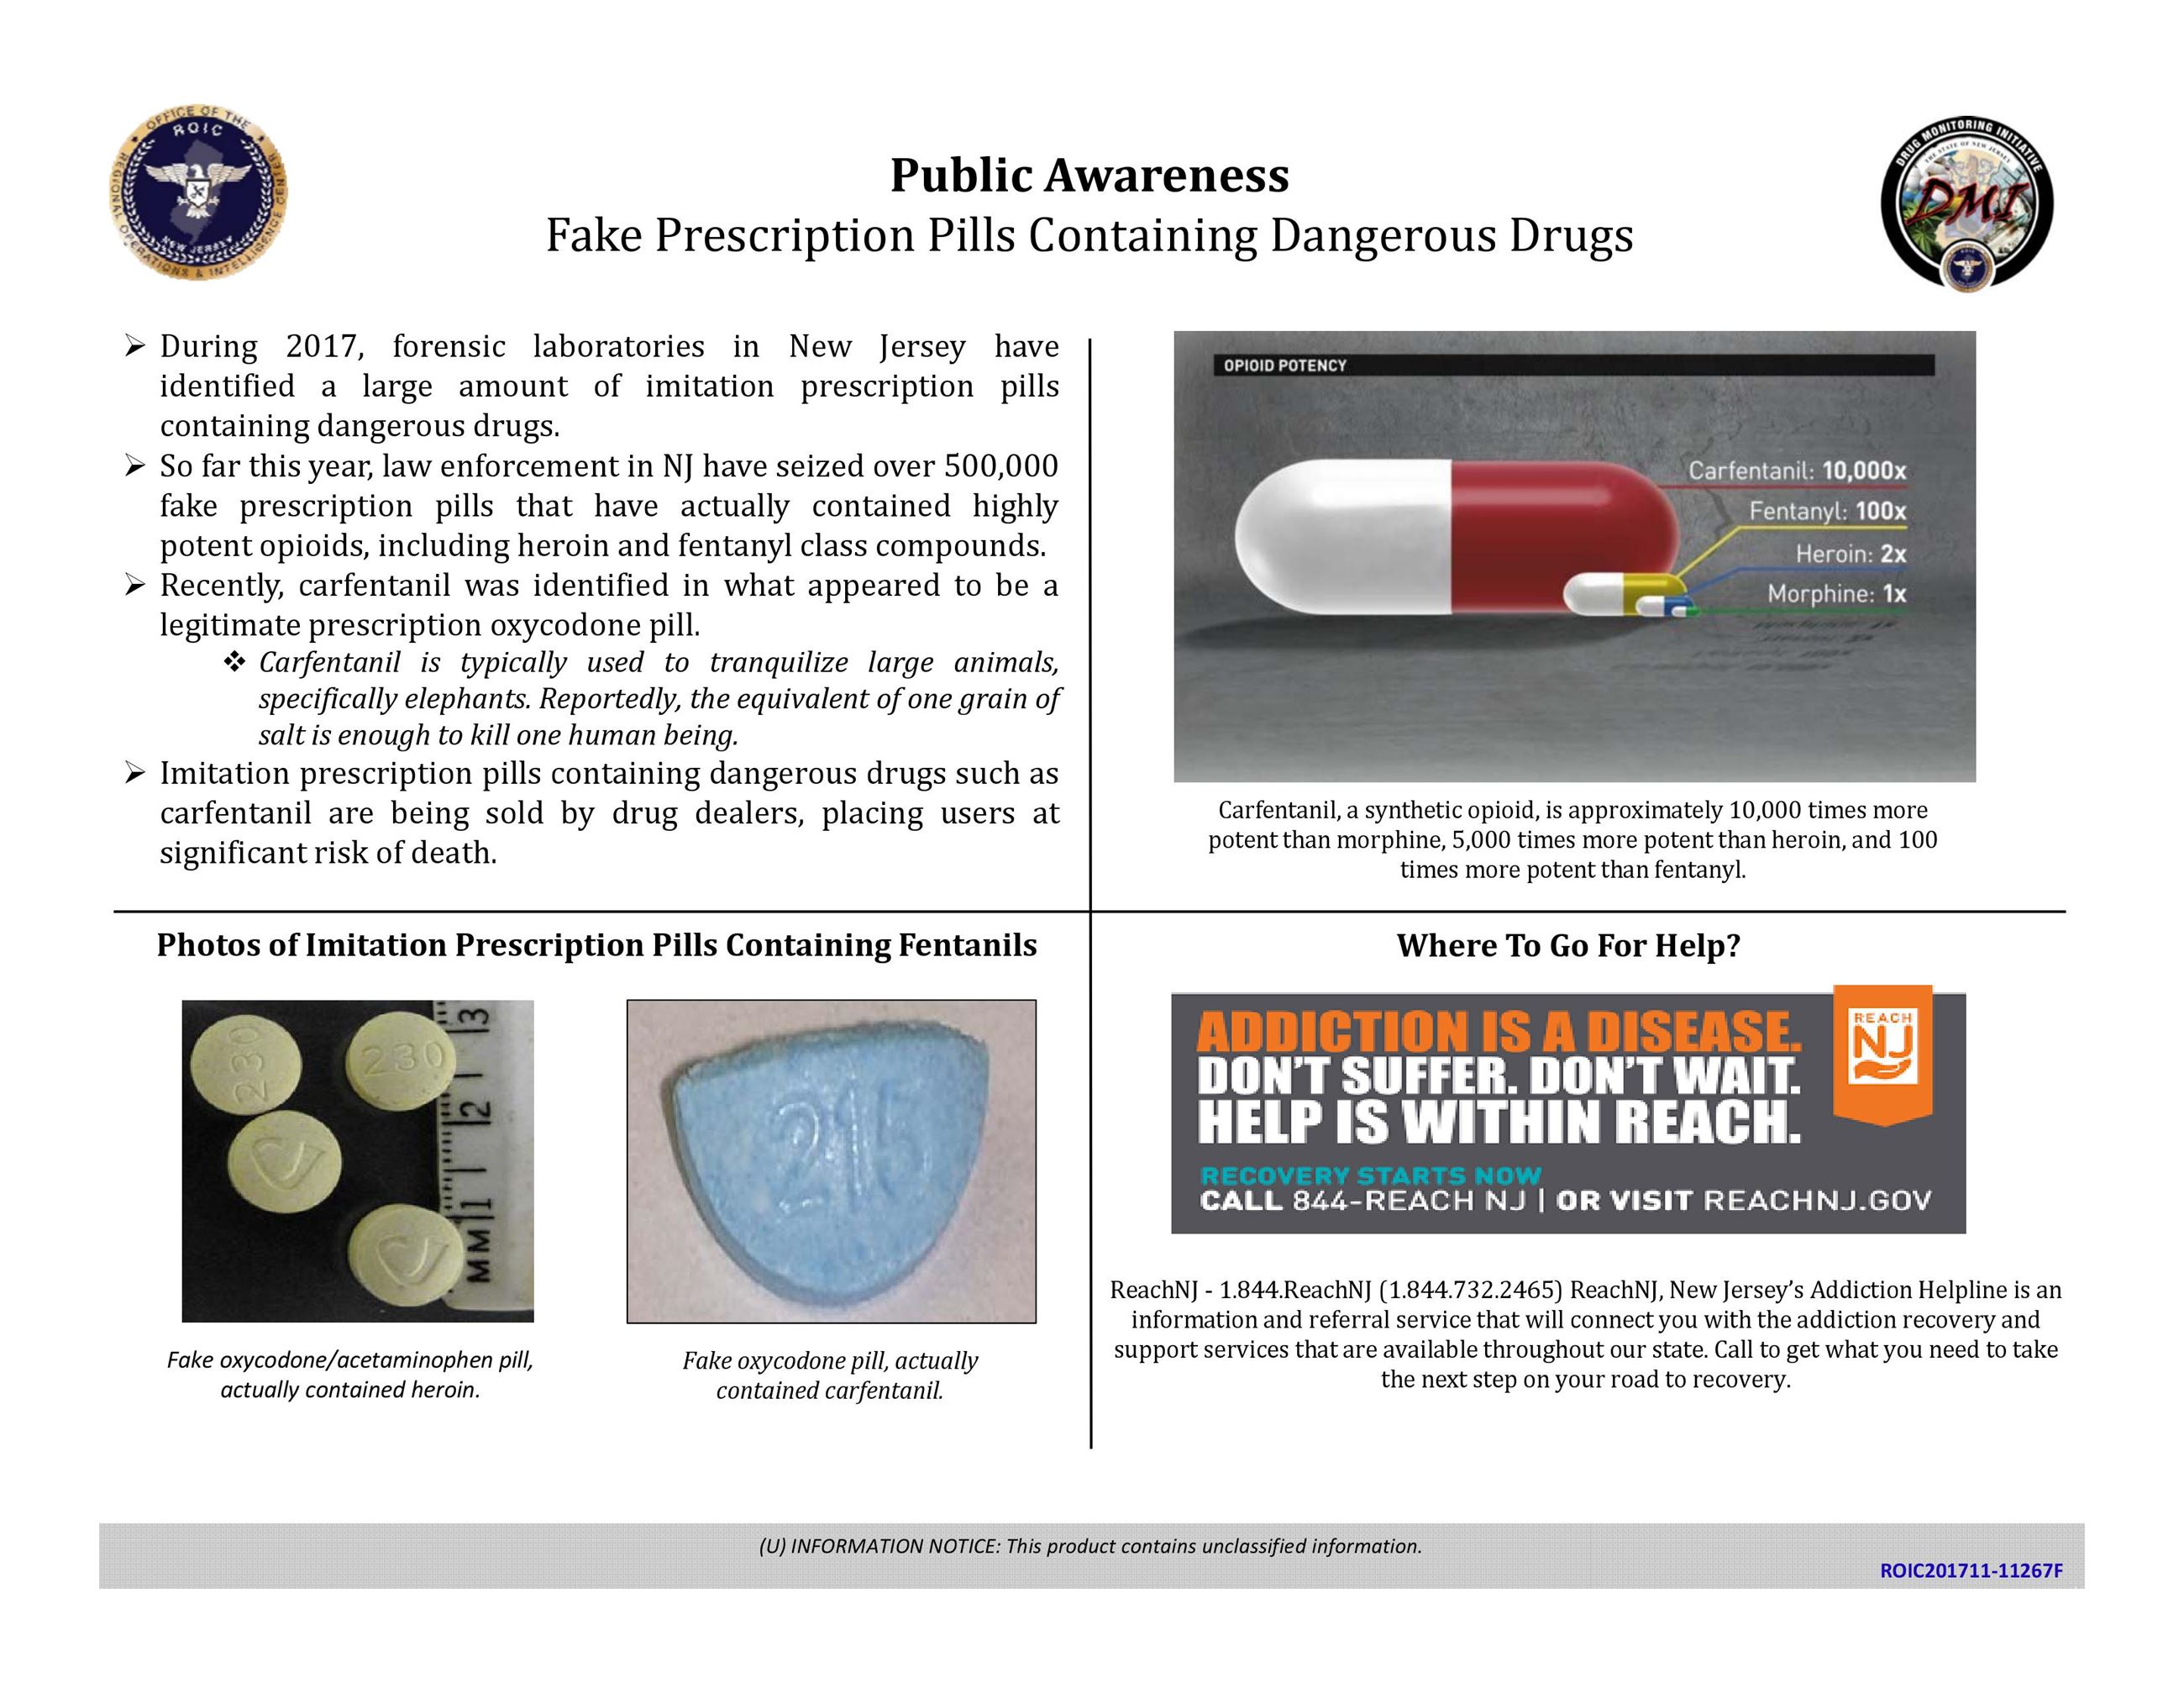 Public Awareness Fake Prescription Pills Containing Dangerous Drugs Final